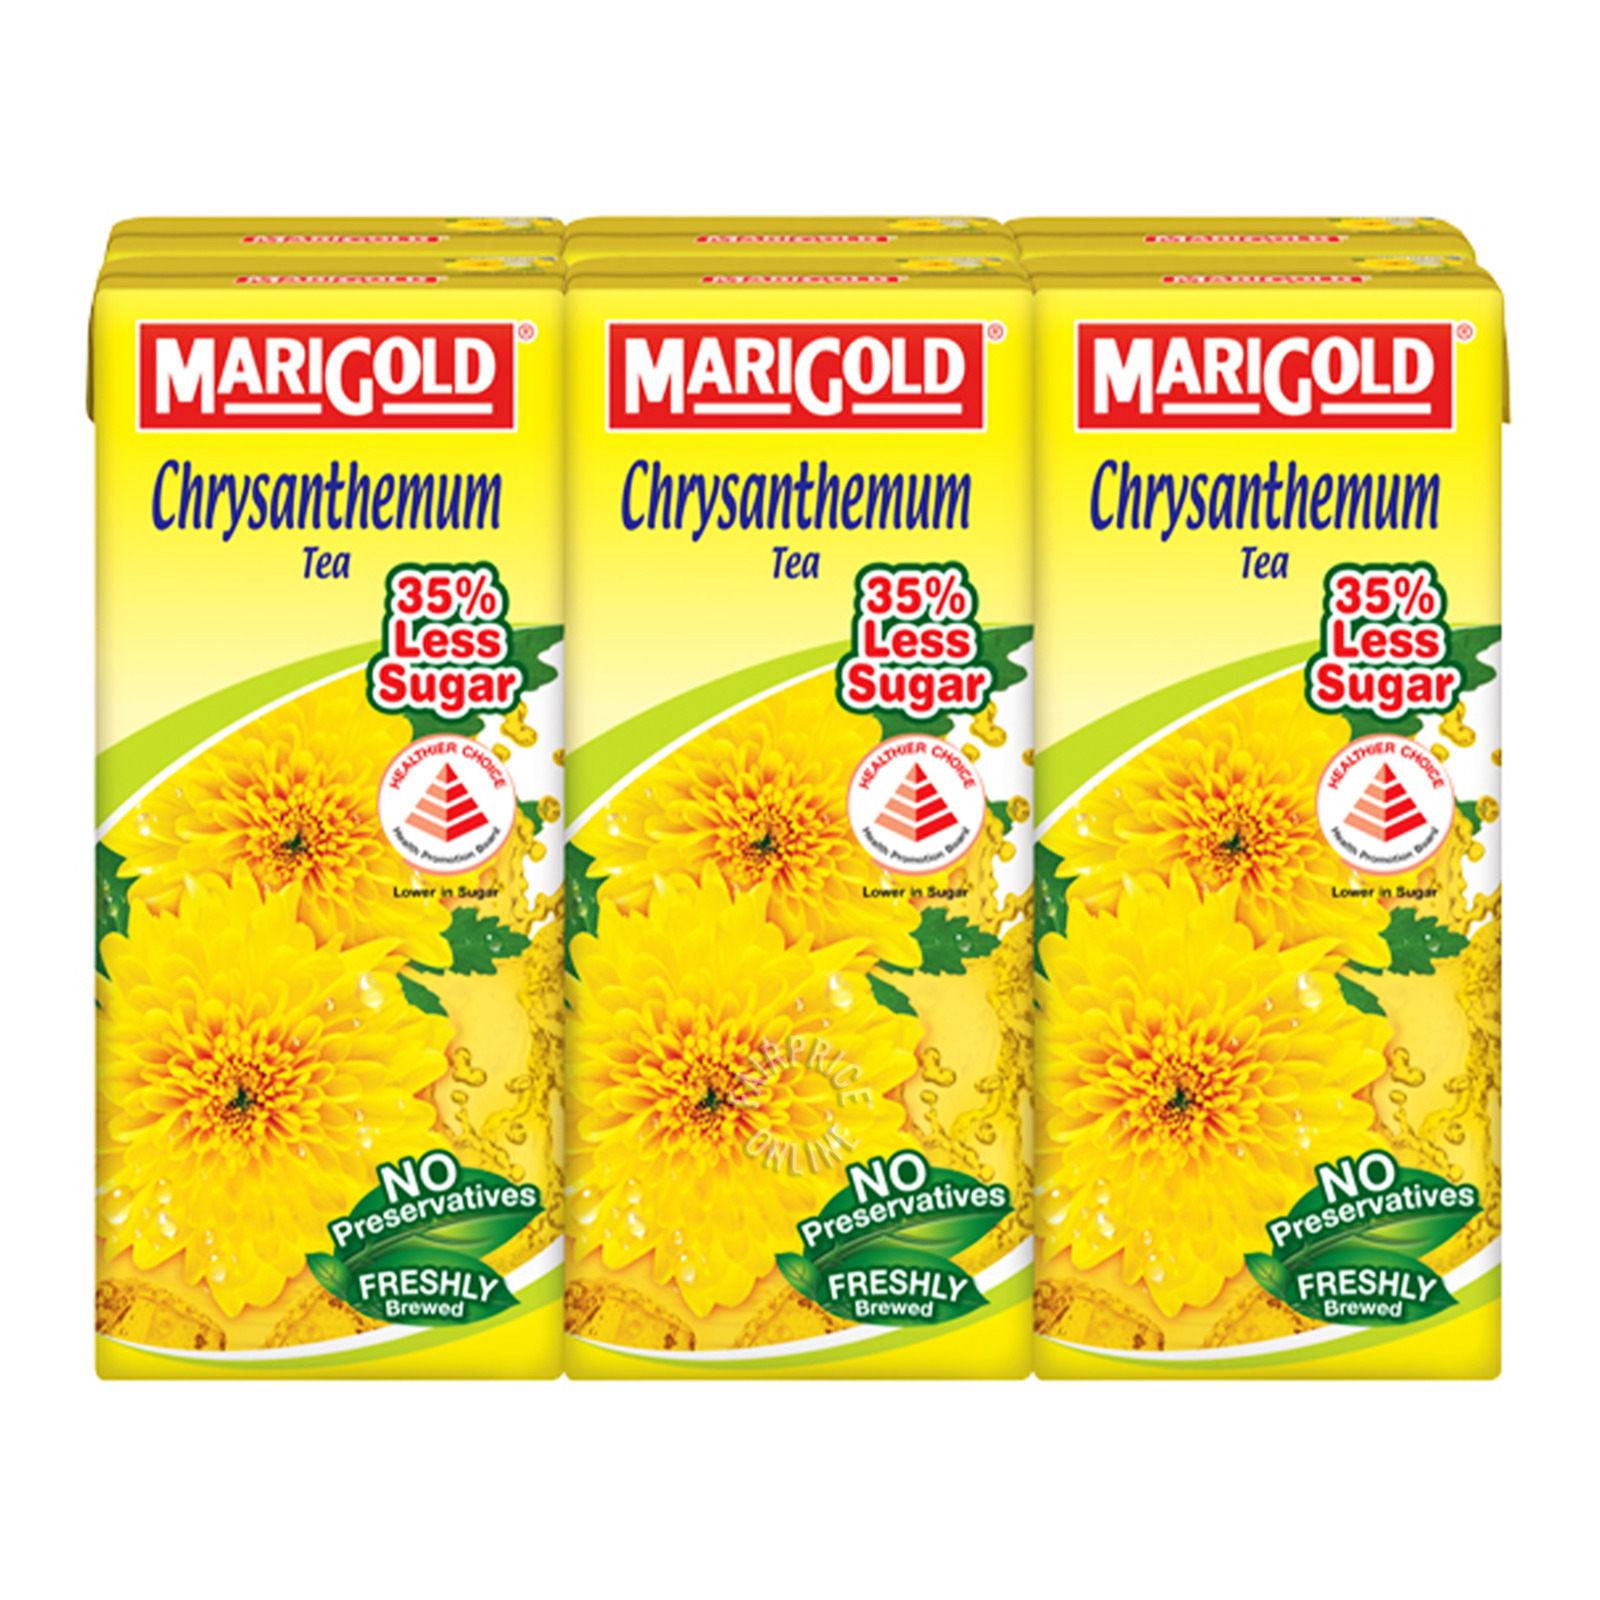 Marigold Packet Drink - Chrysanthemum Tea (Less Sweet)